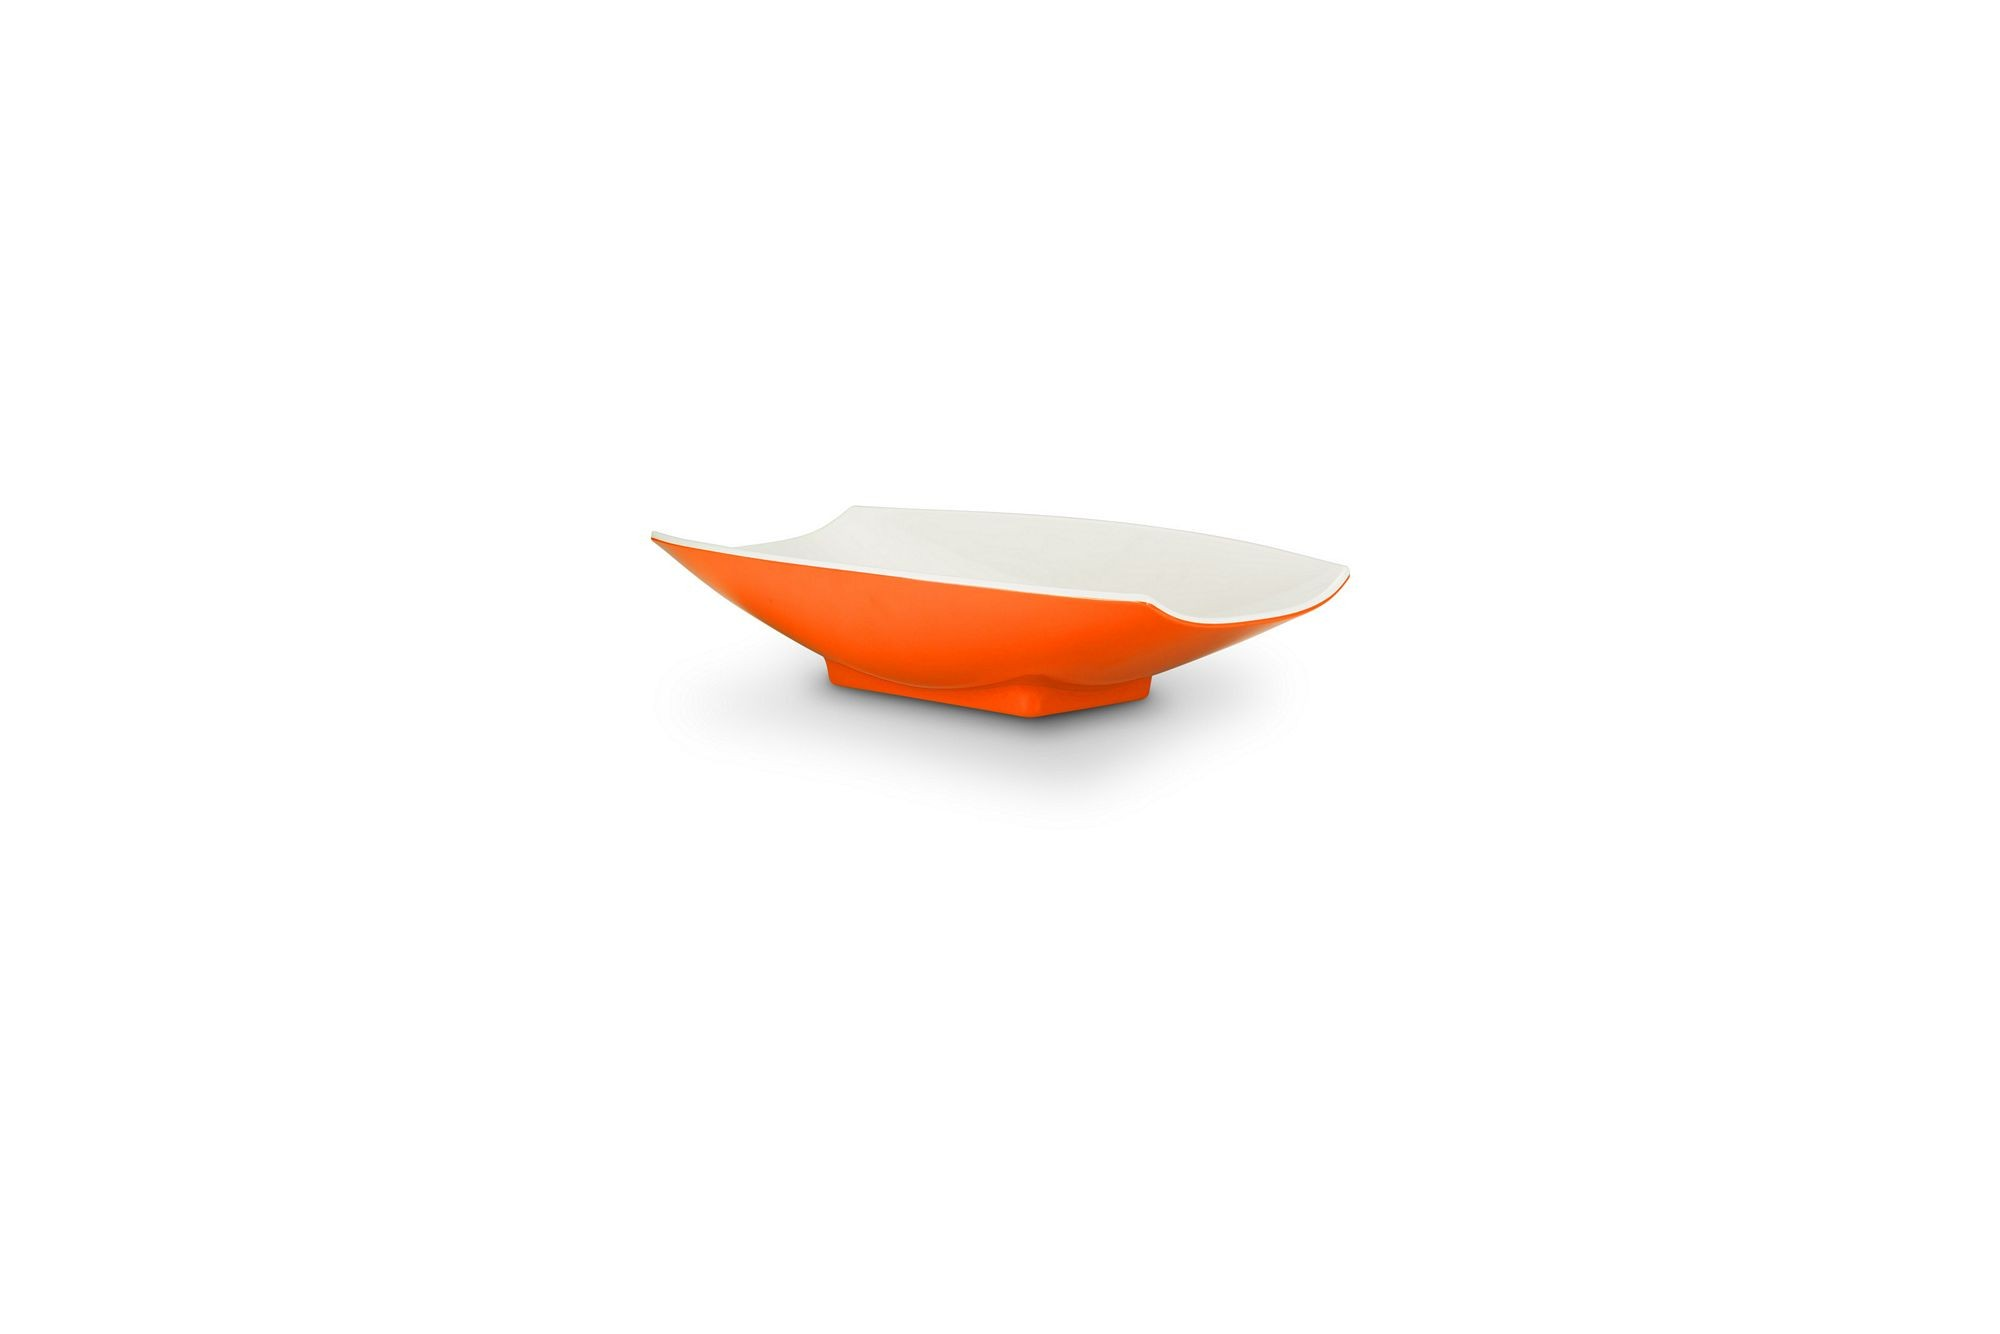 Bon Chef 53701-2ToneOrange Melamine Curves Bowl, Orange Outside/White Inside 8 oz.